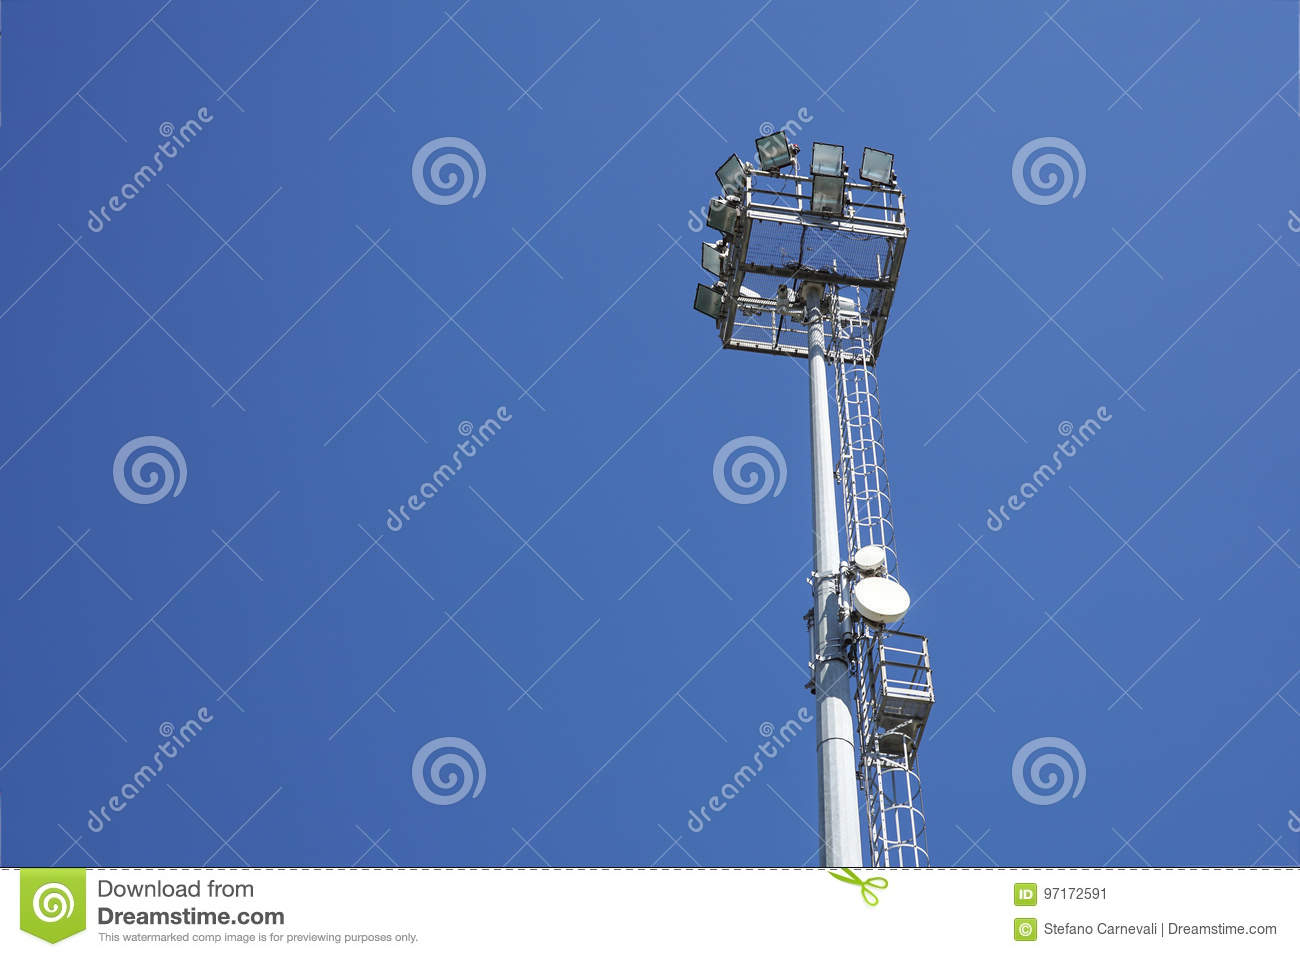 Outdoor stadium lights and telecommunication tower against daytime blue sky. 58ba597b51ef7